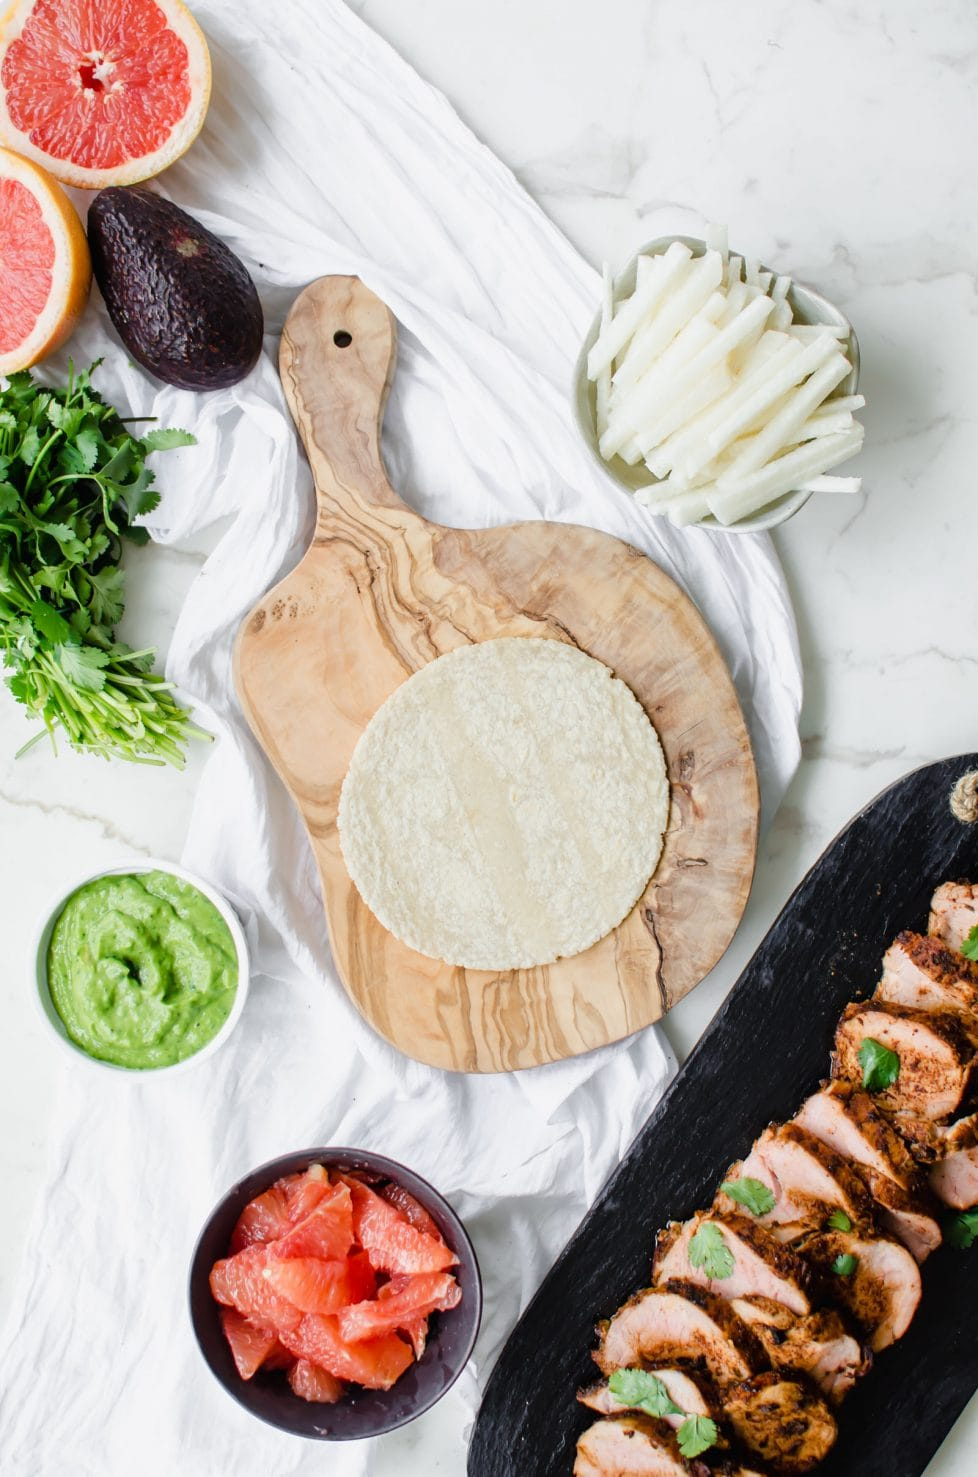 Olive wood cutting board with a corn tortilla and other tacos fillings.